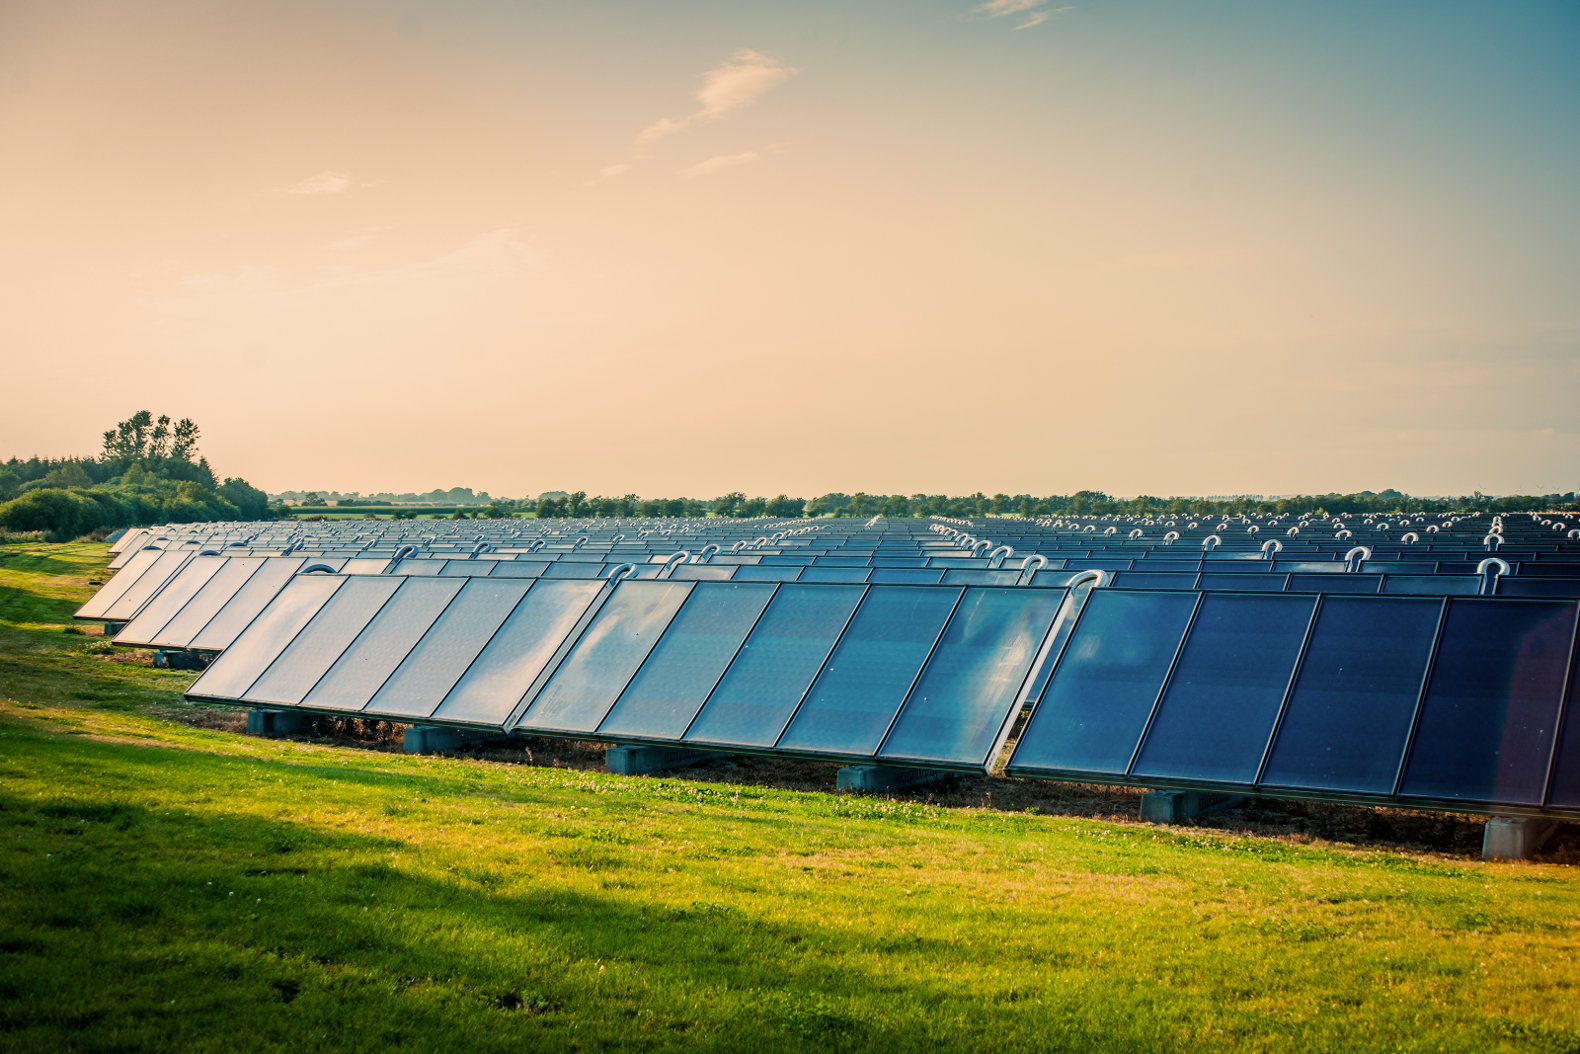 With a special glass coating, these solar panels can capture sunlight from almost any angle